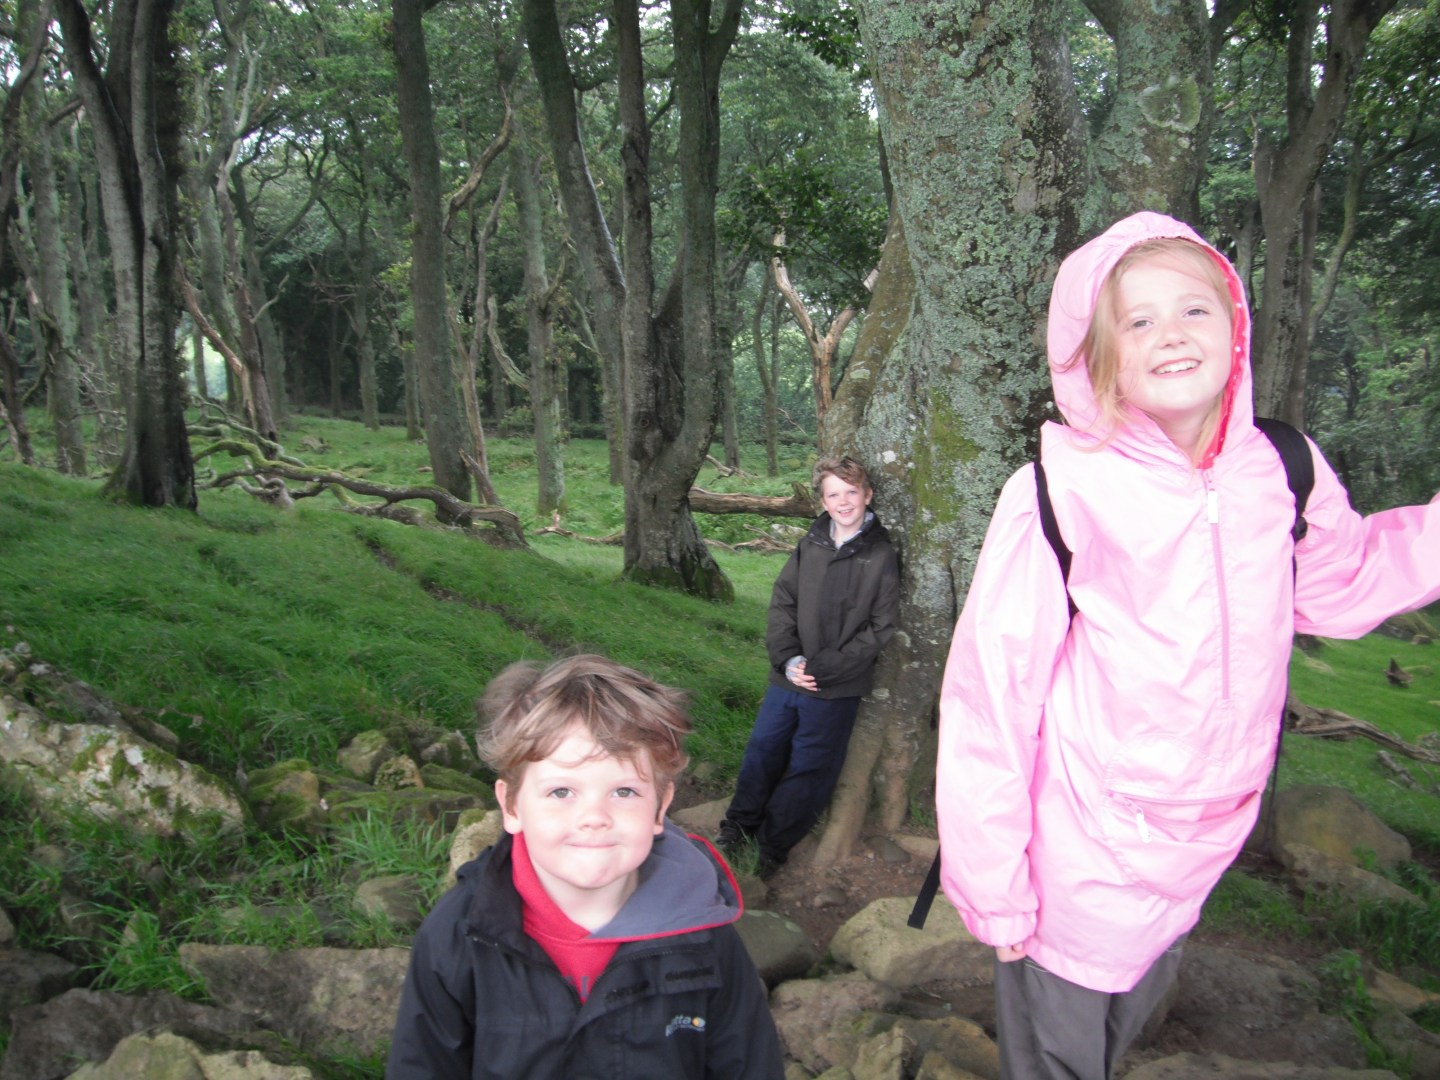 Neva, kaide and Lochlan smiling on their woodland walk